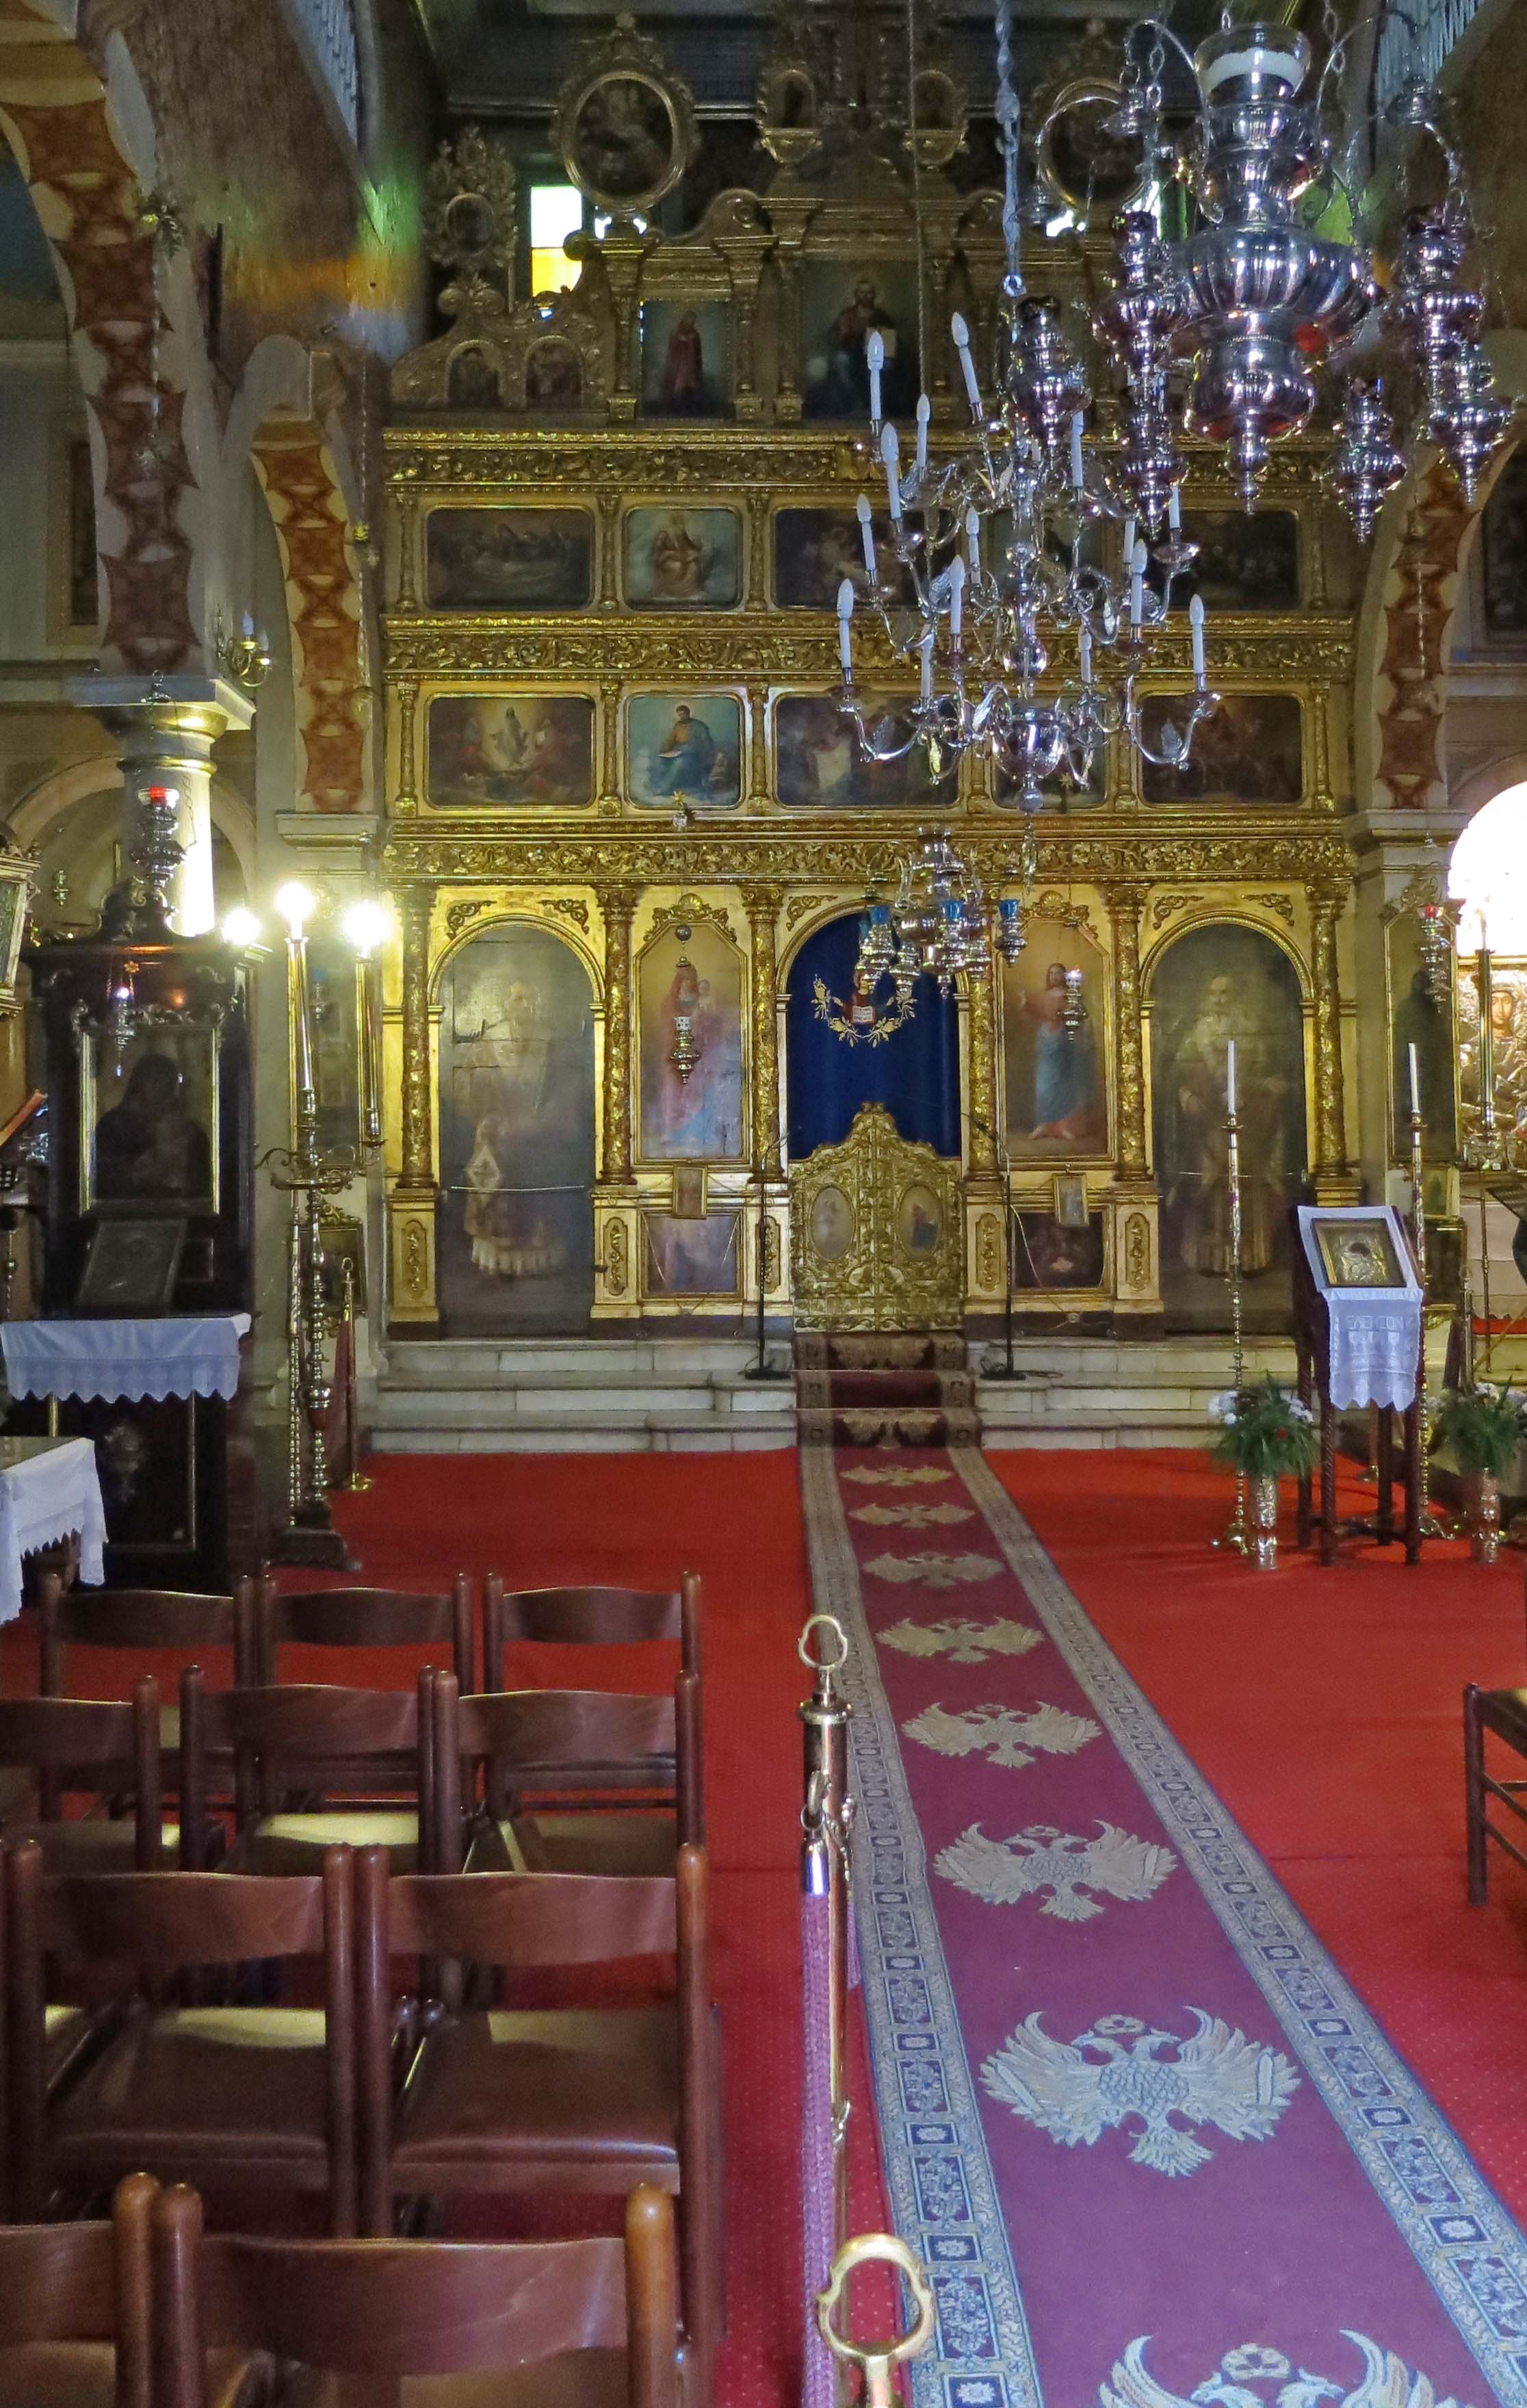 The adventure involved in travel is experiencing new sites and cultures. This was a beautiful Greek Orthodox Church we walked into.